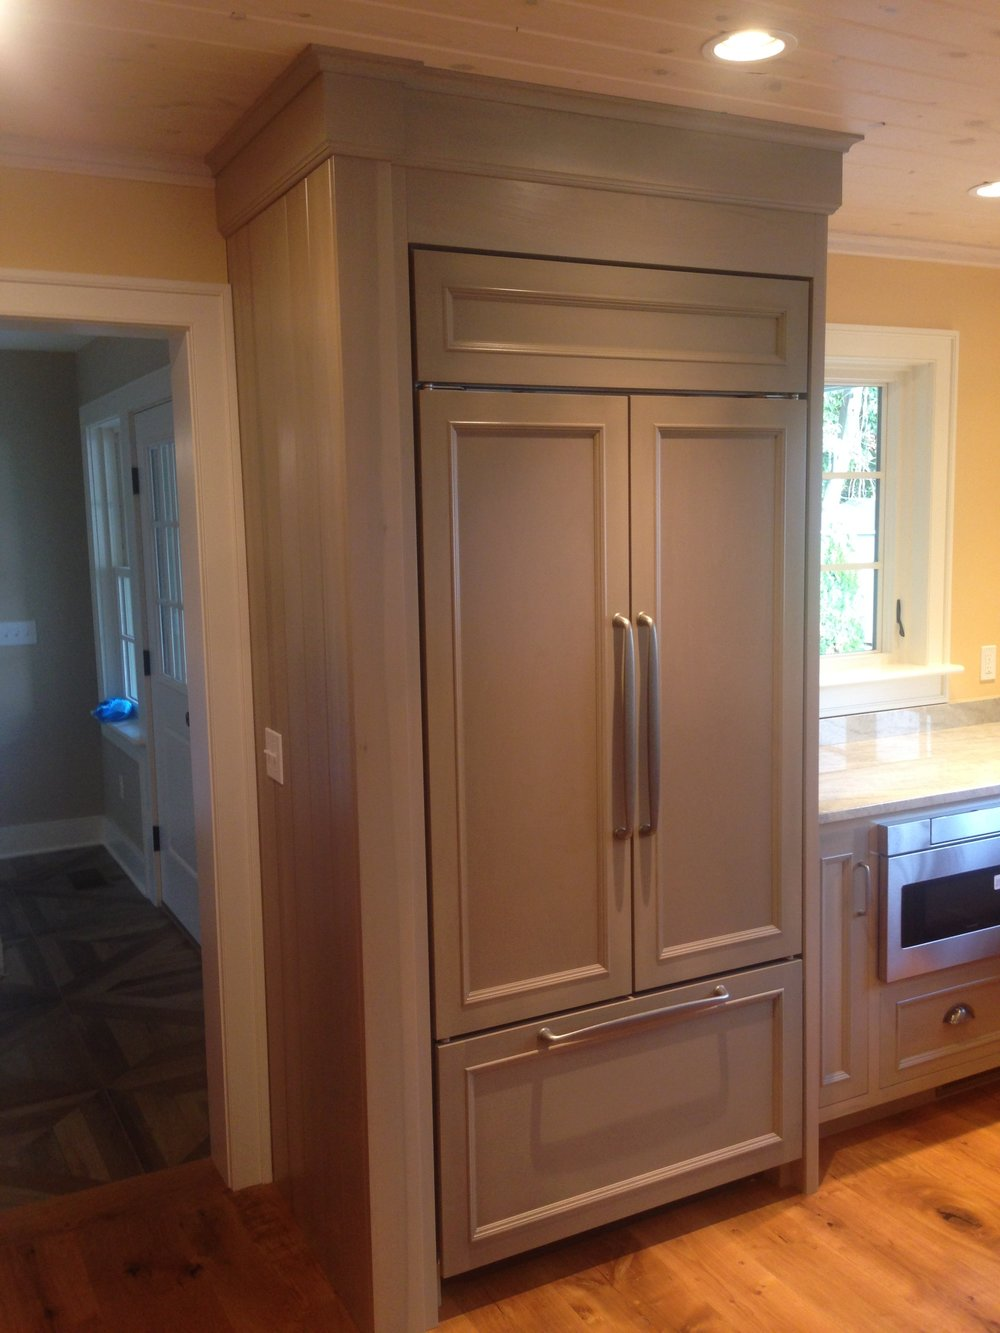 A Cottage Kitchen in Semi-Transparent Sage Lacquer, Quartzite Countertops, and Whitewashed Uppers 5.jpg